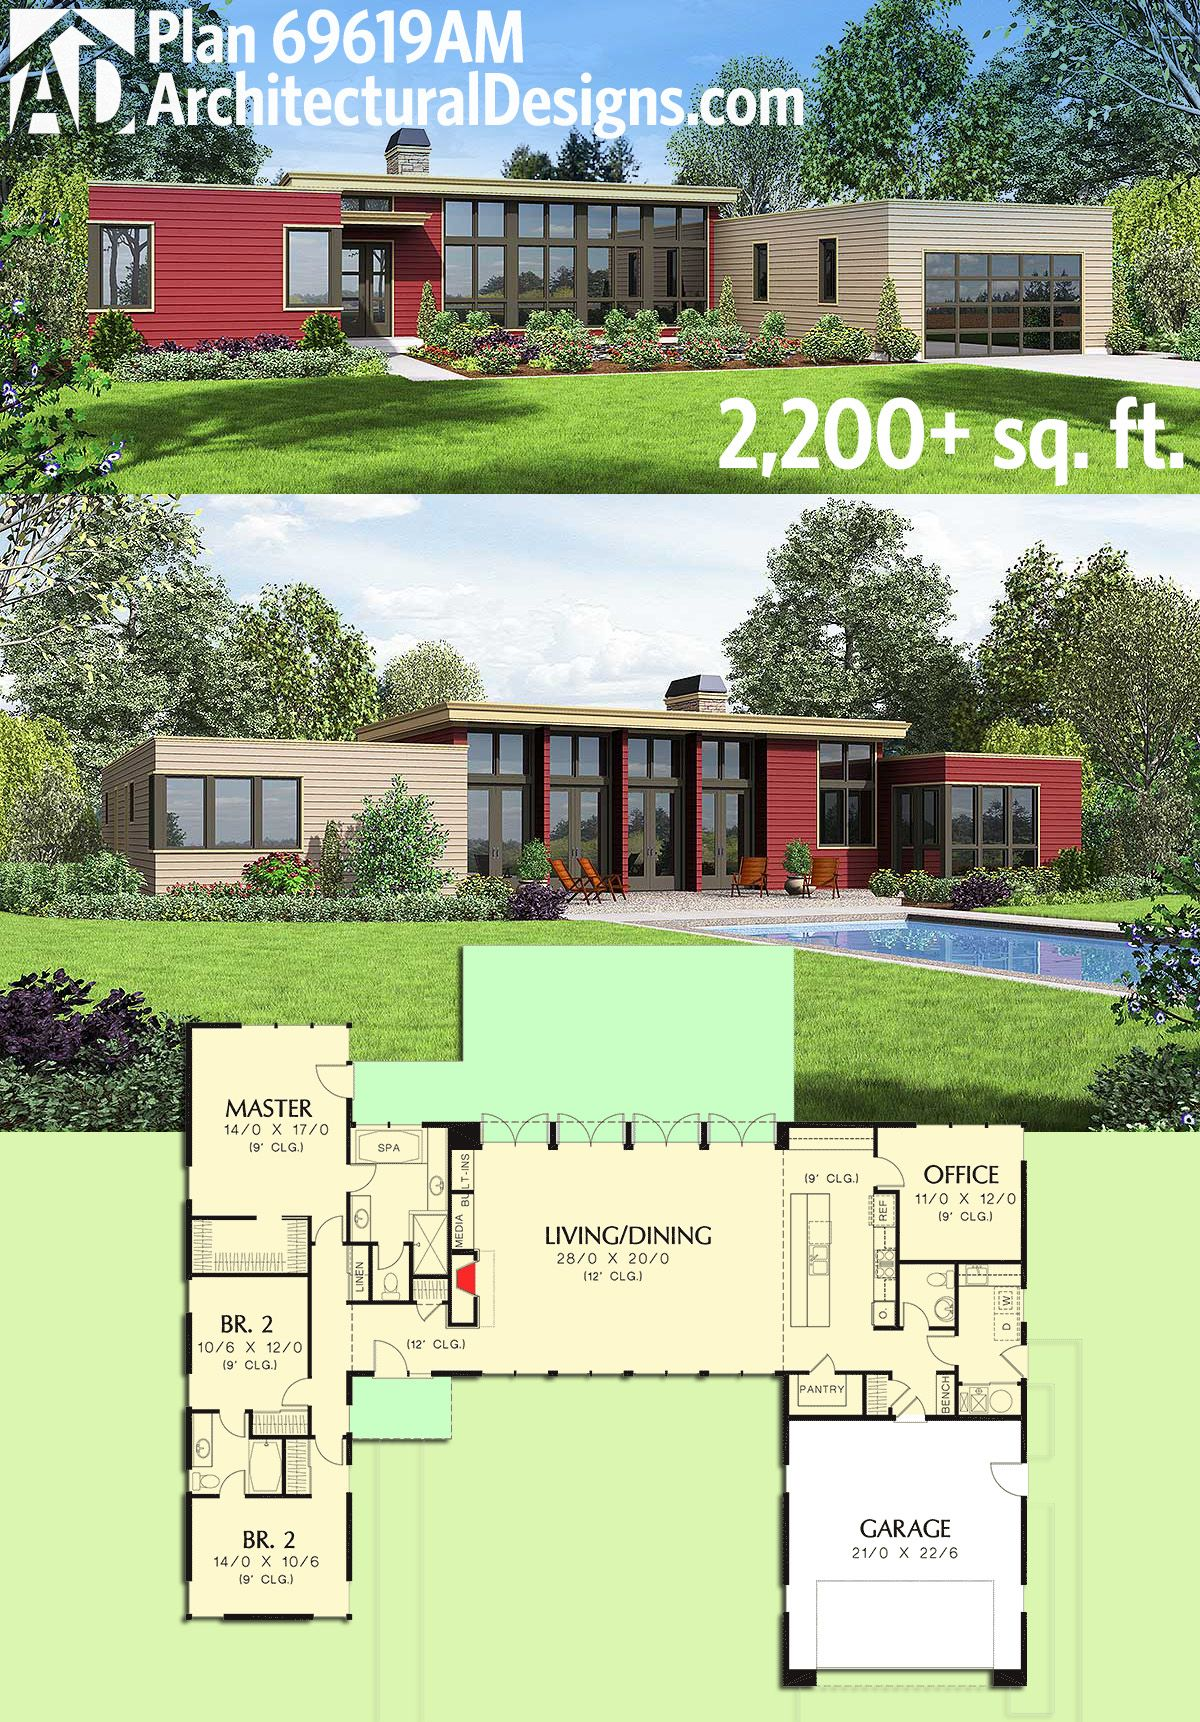 Plan 69619am 3 bed modern house plan with open concept for Modern house plans 2400 sq ft